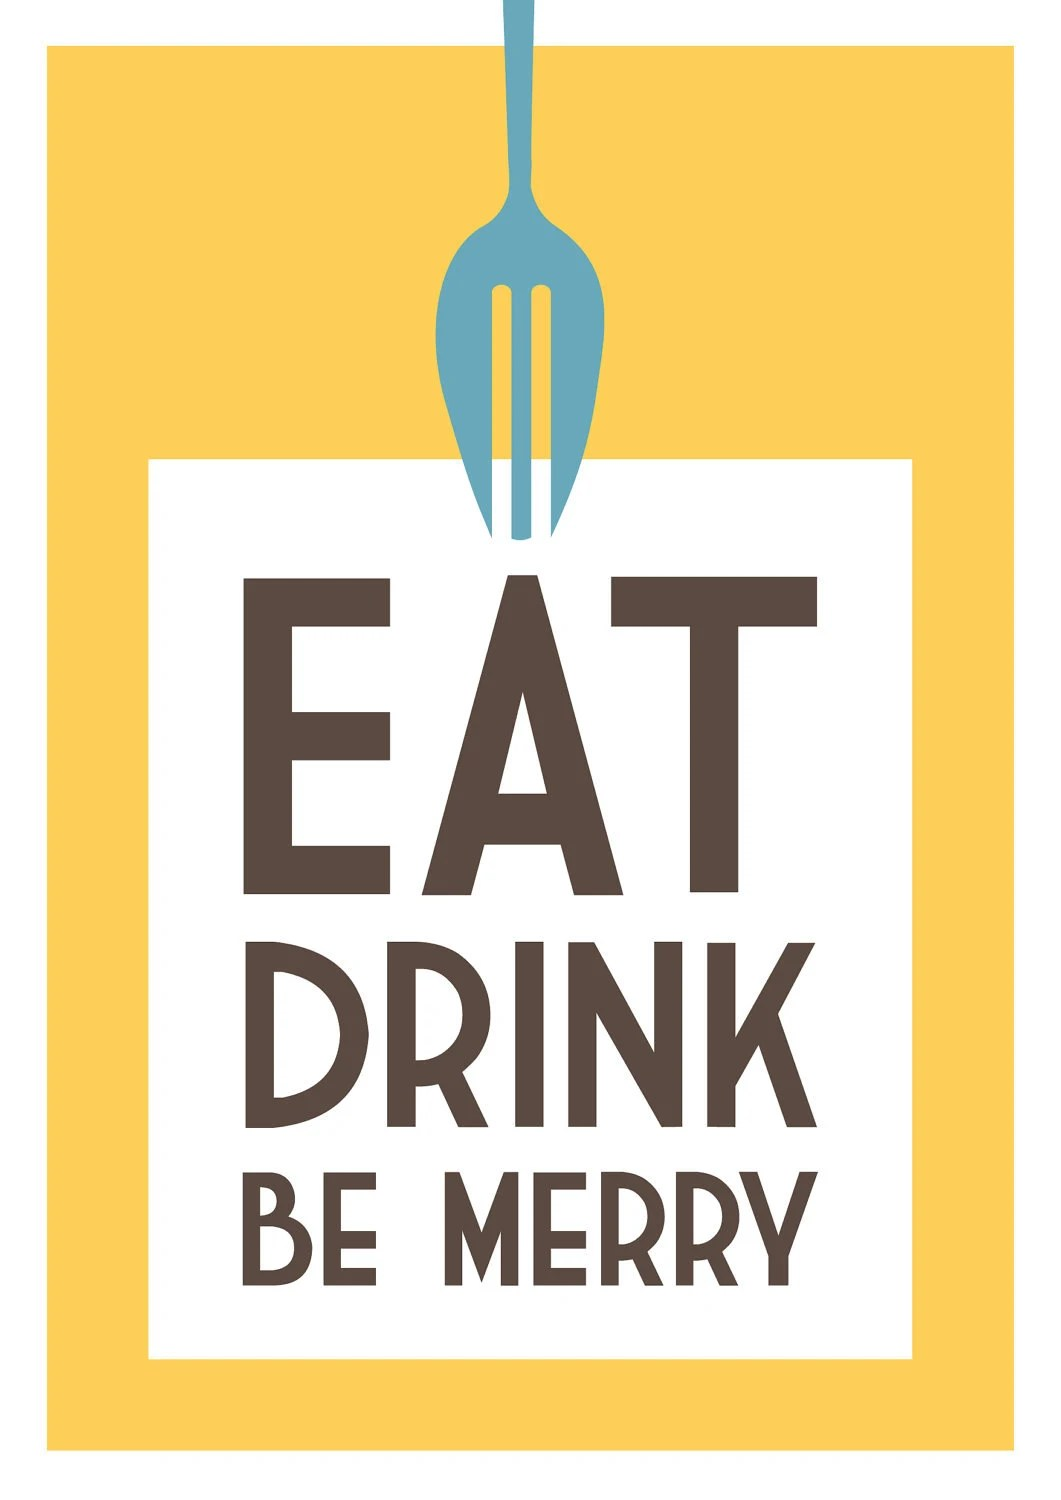 Kitchen art print, Eat, Drink, Be Merry in yellow: 5 x 7